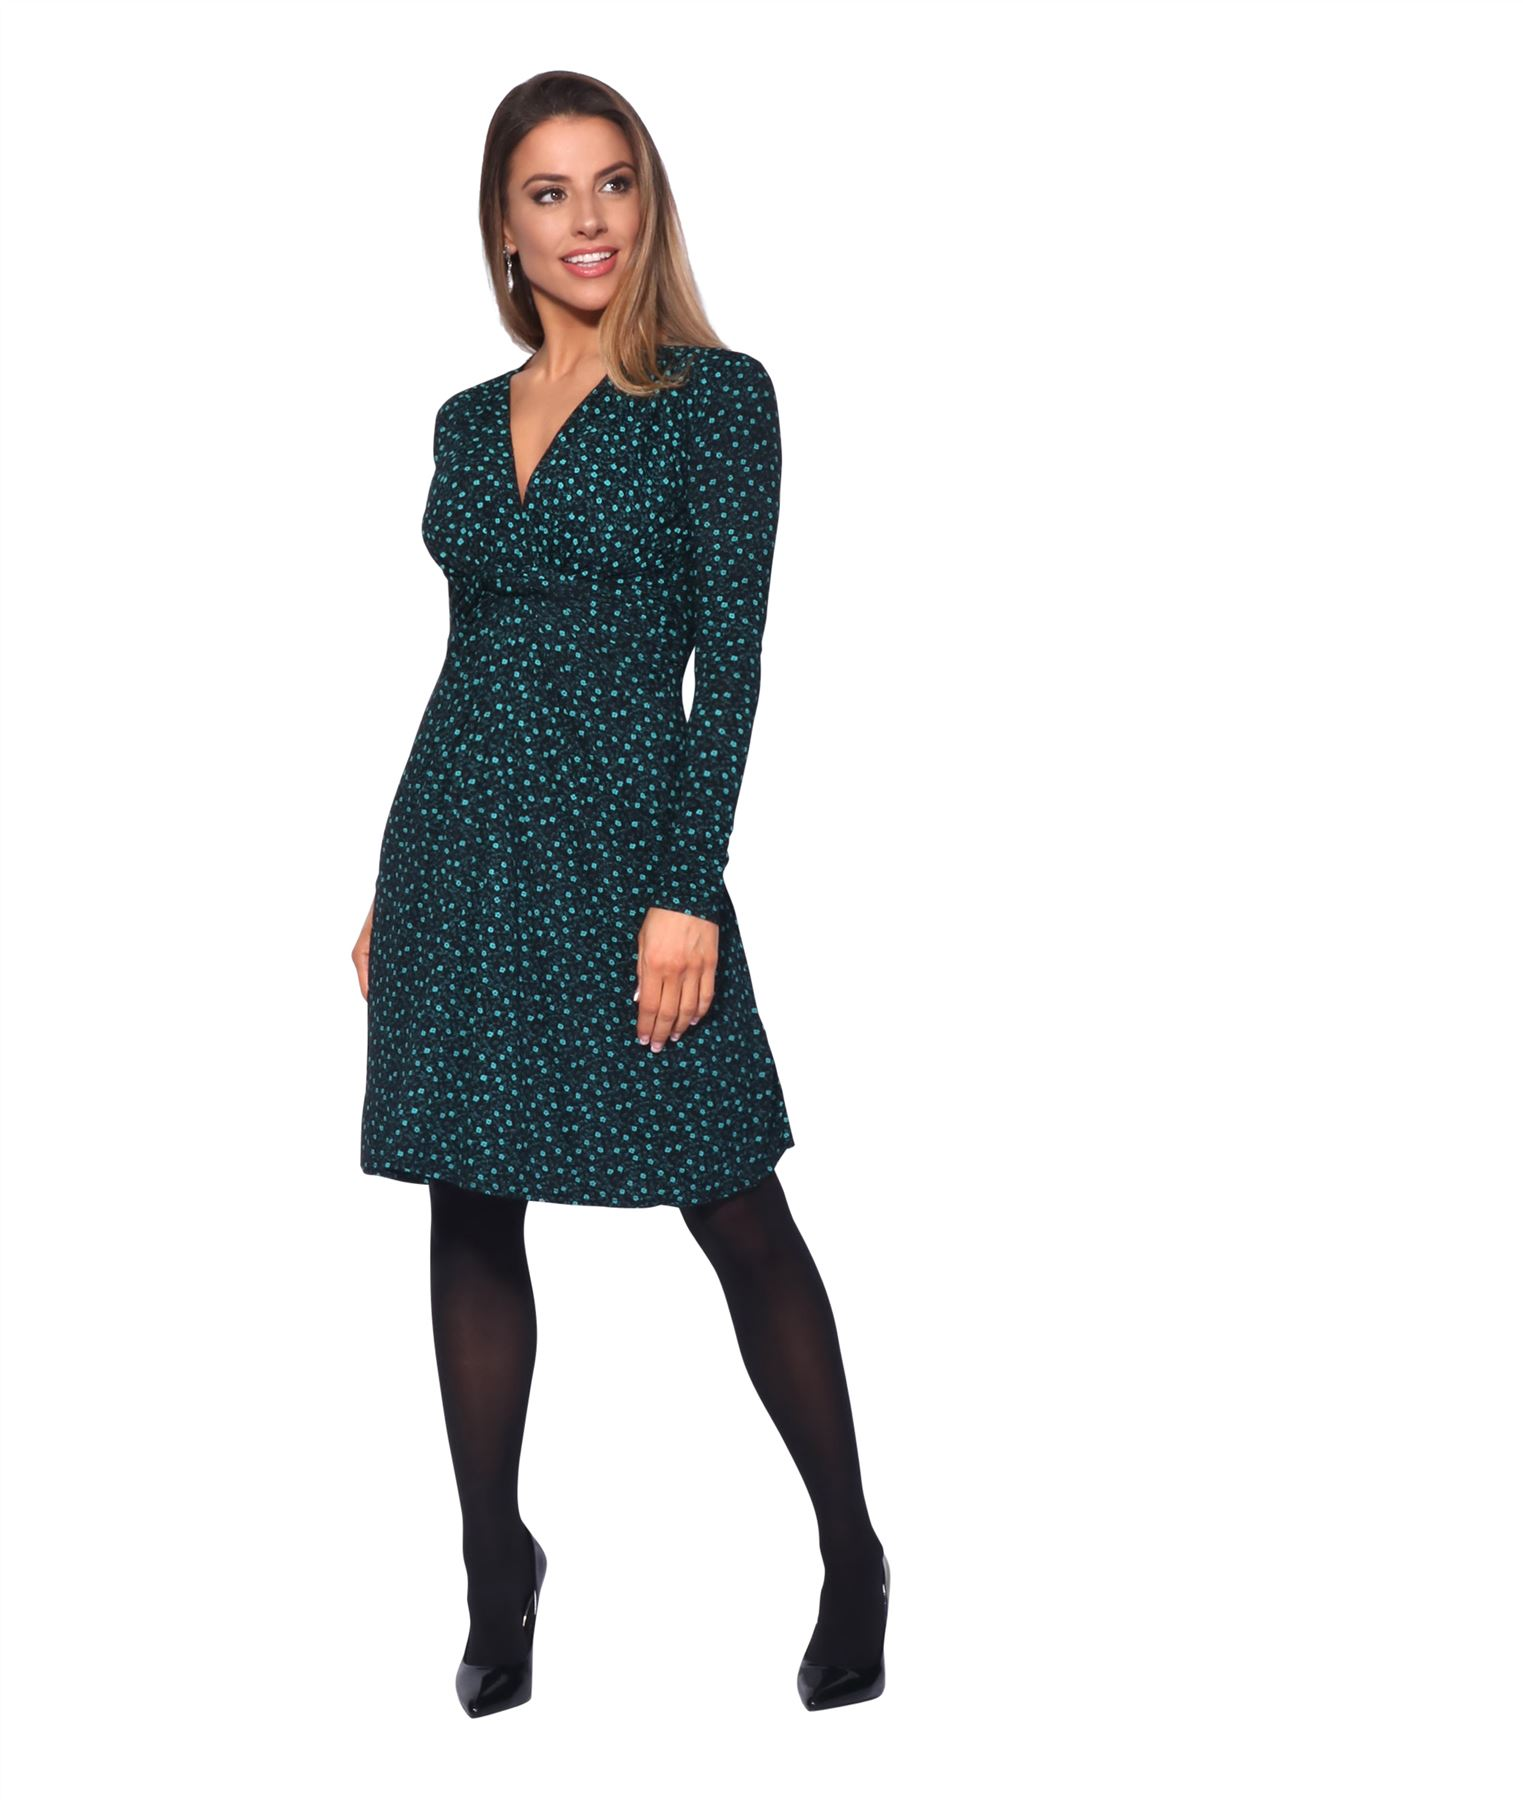 Womens-Ladies-Pattern-Dress-Drape-Print-Stretch-Long-Sleeve-Ruched-Knot-Party thumbnail 12